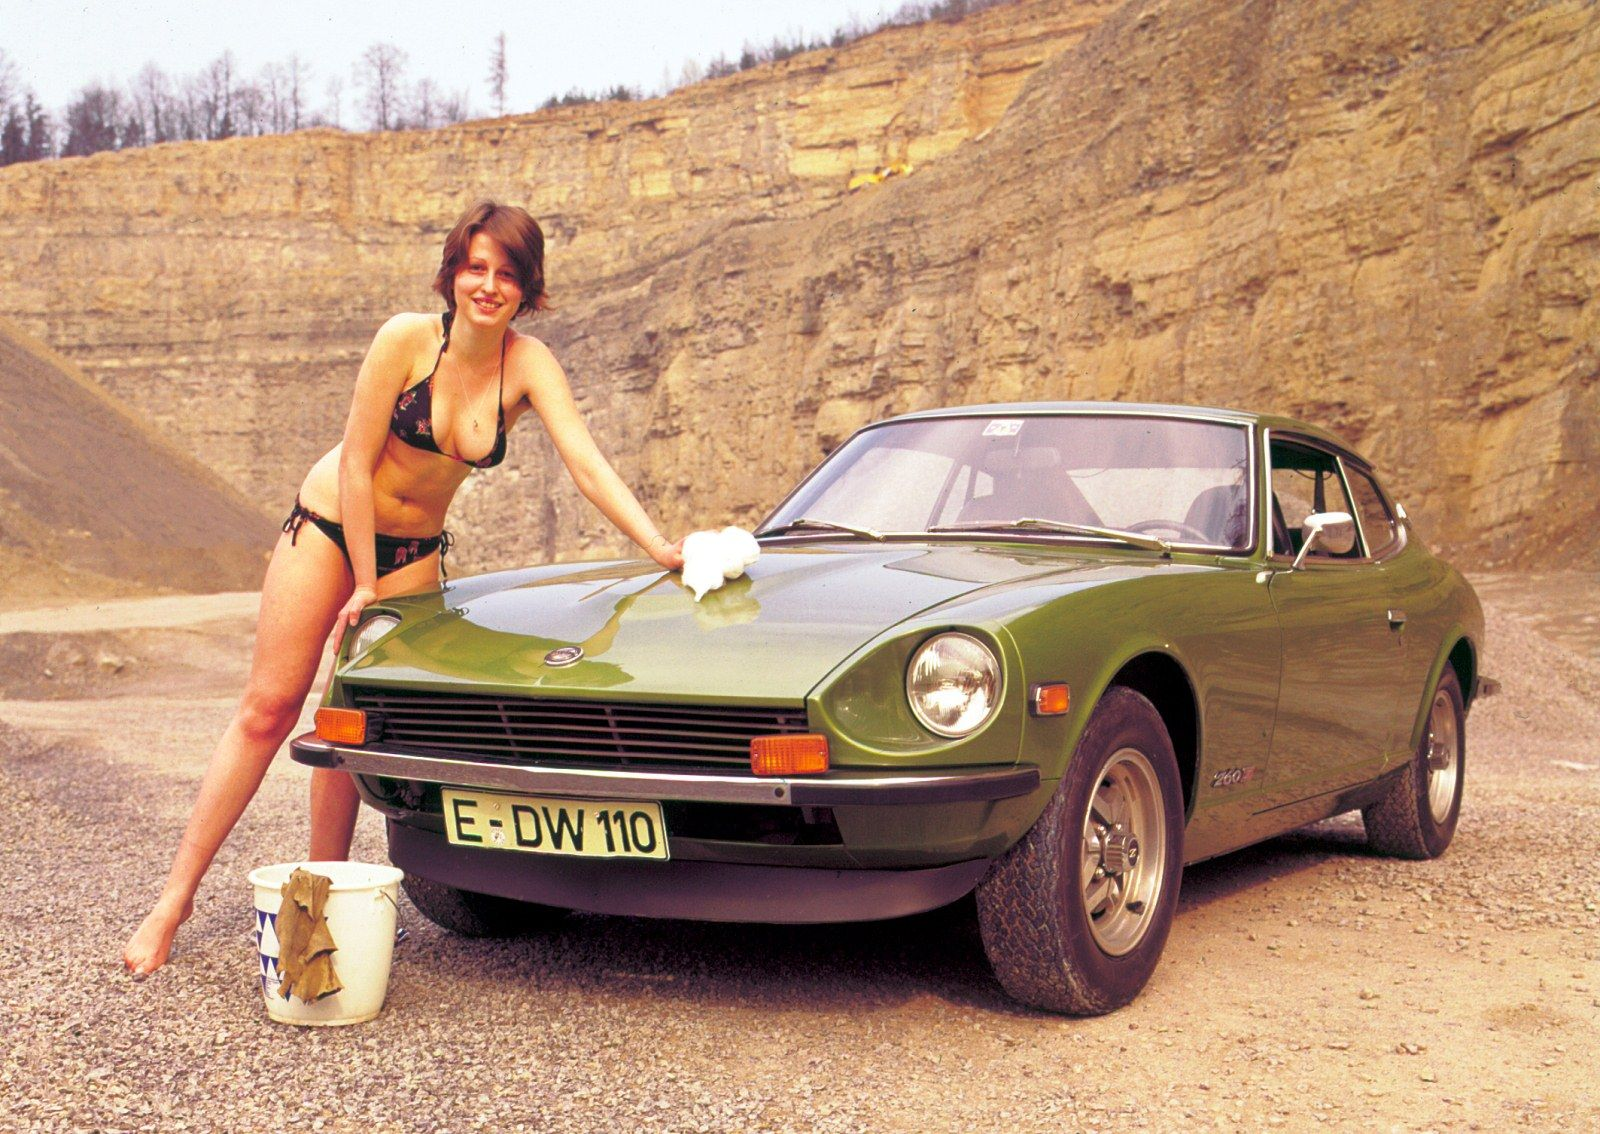 Gonna have ash take a pic of me like this with my 260 z